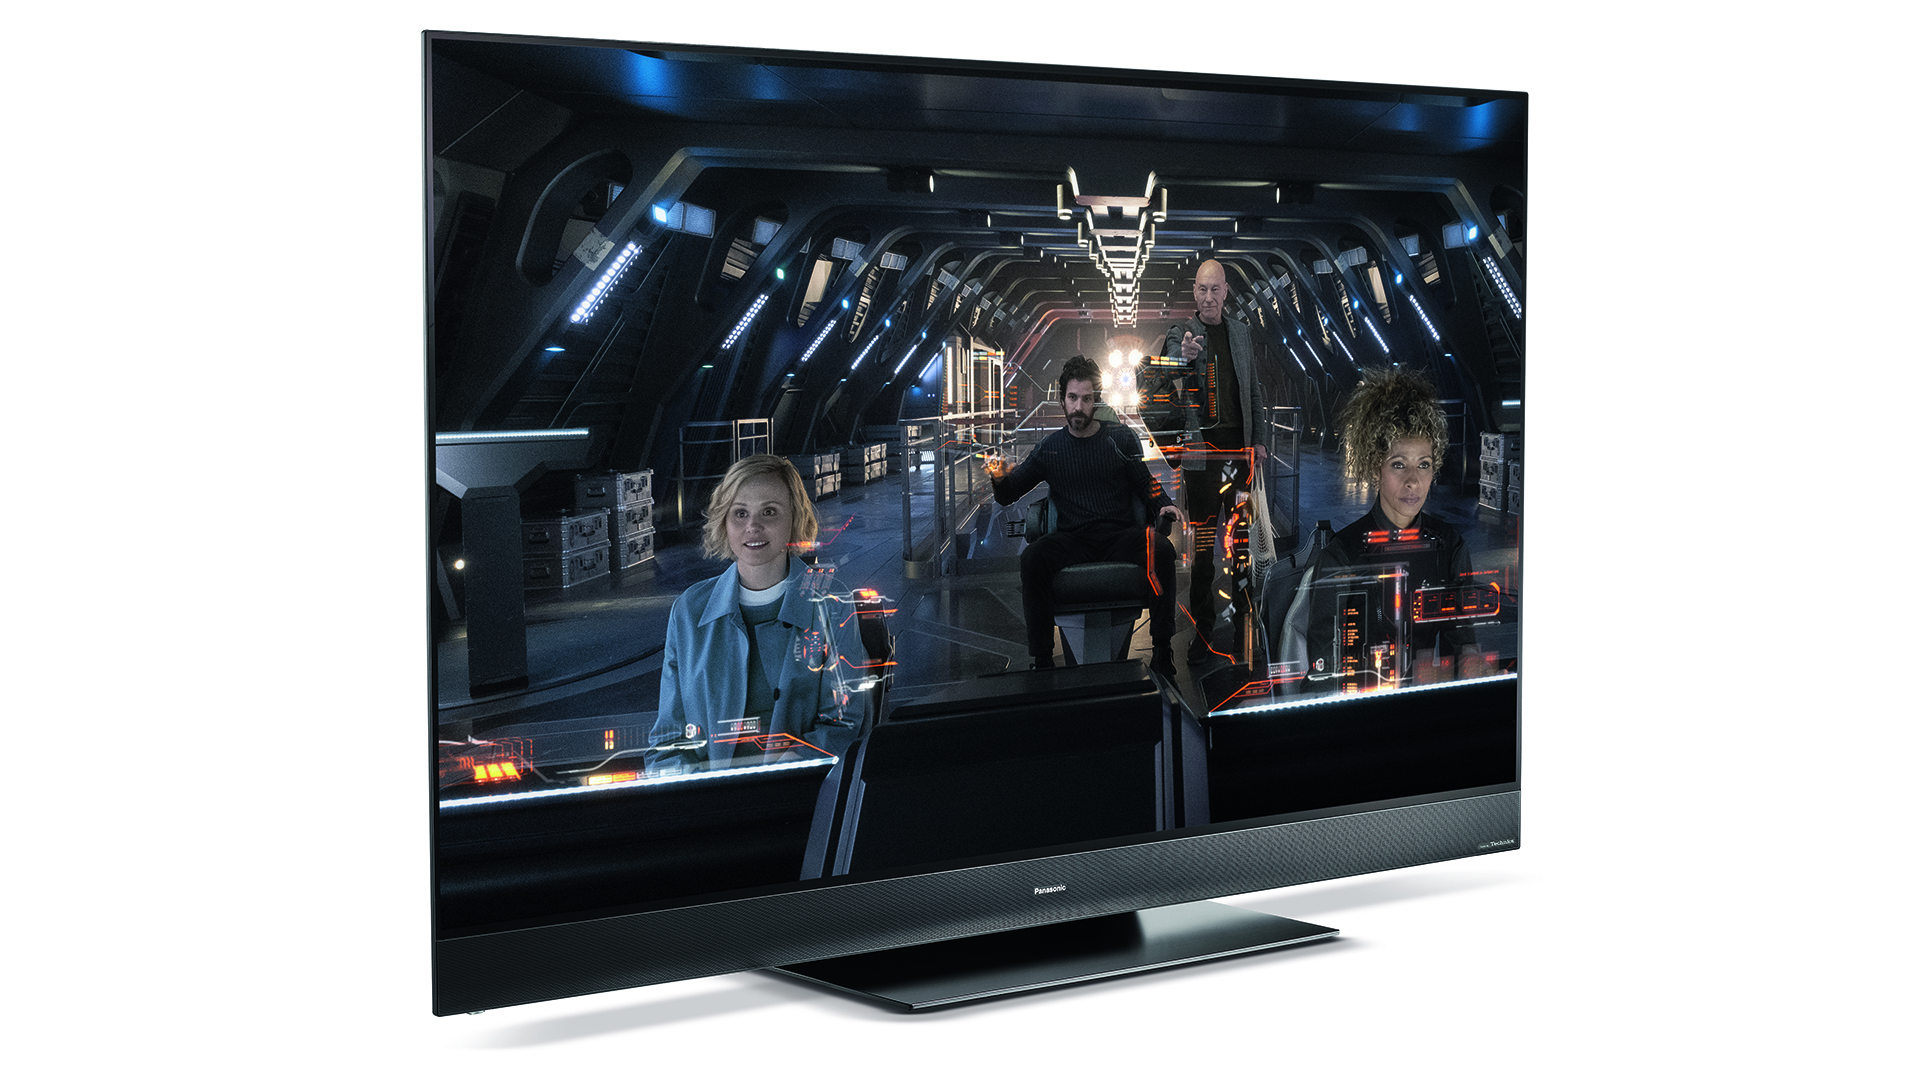 Best OLED TVs 2020: the best budget and